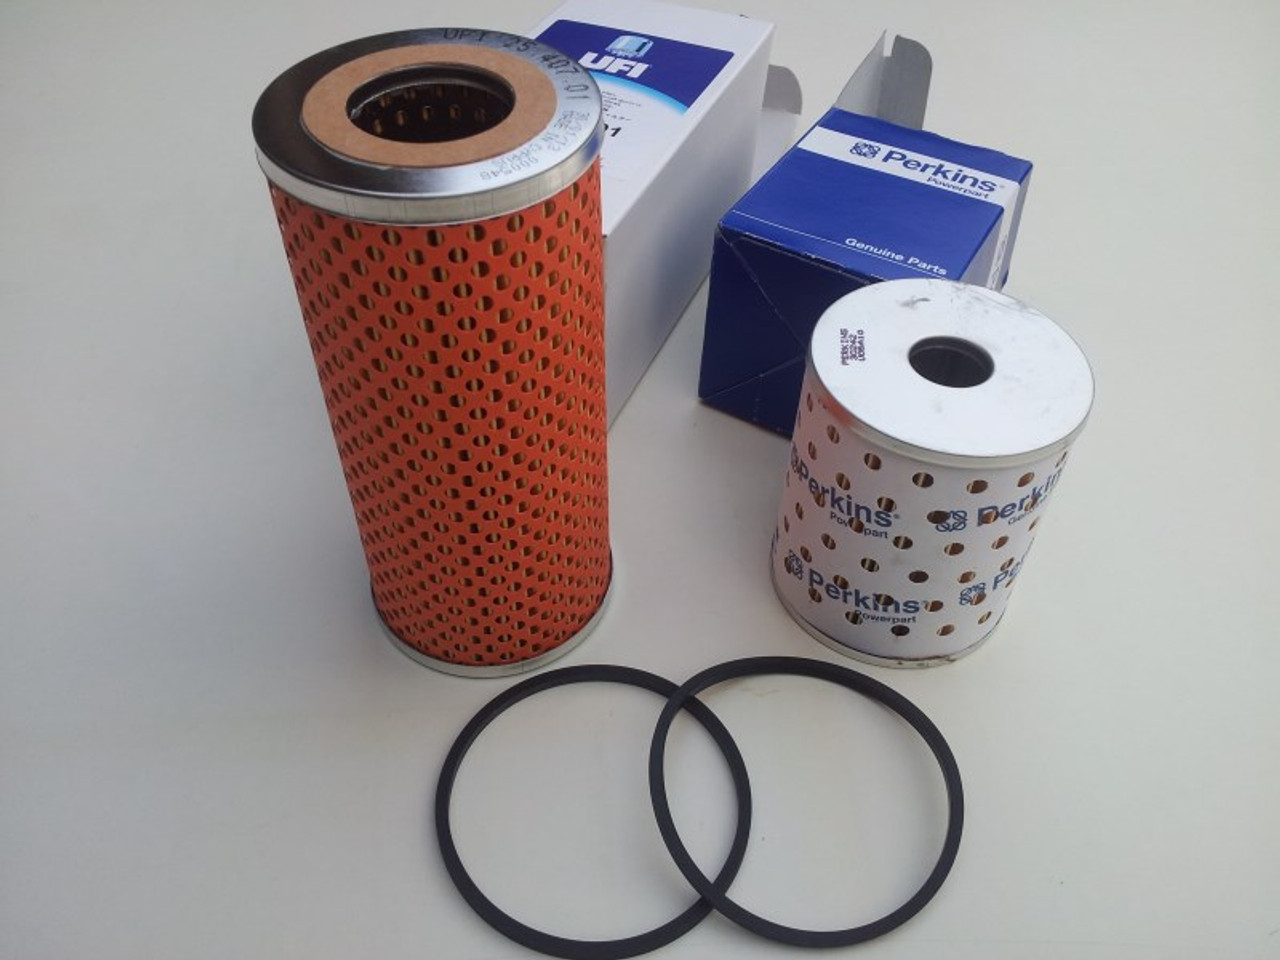 Perkins 4.248 Filter Set from parts4engines.com